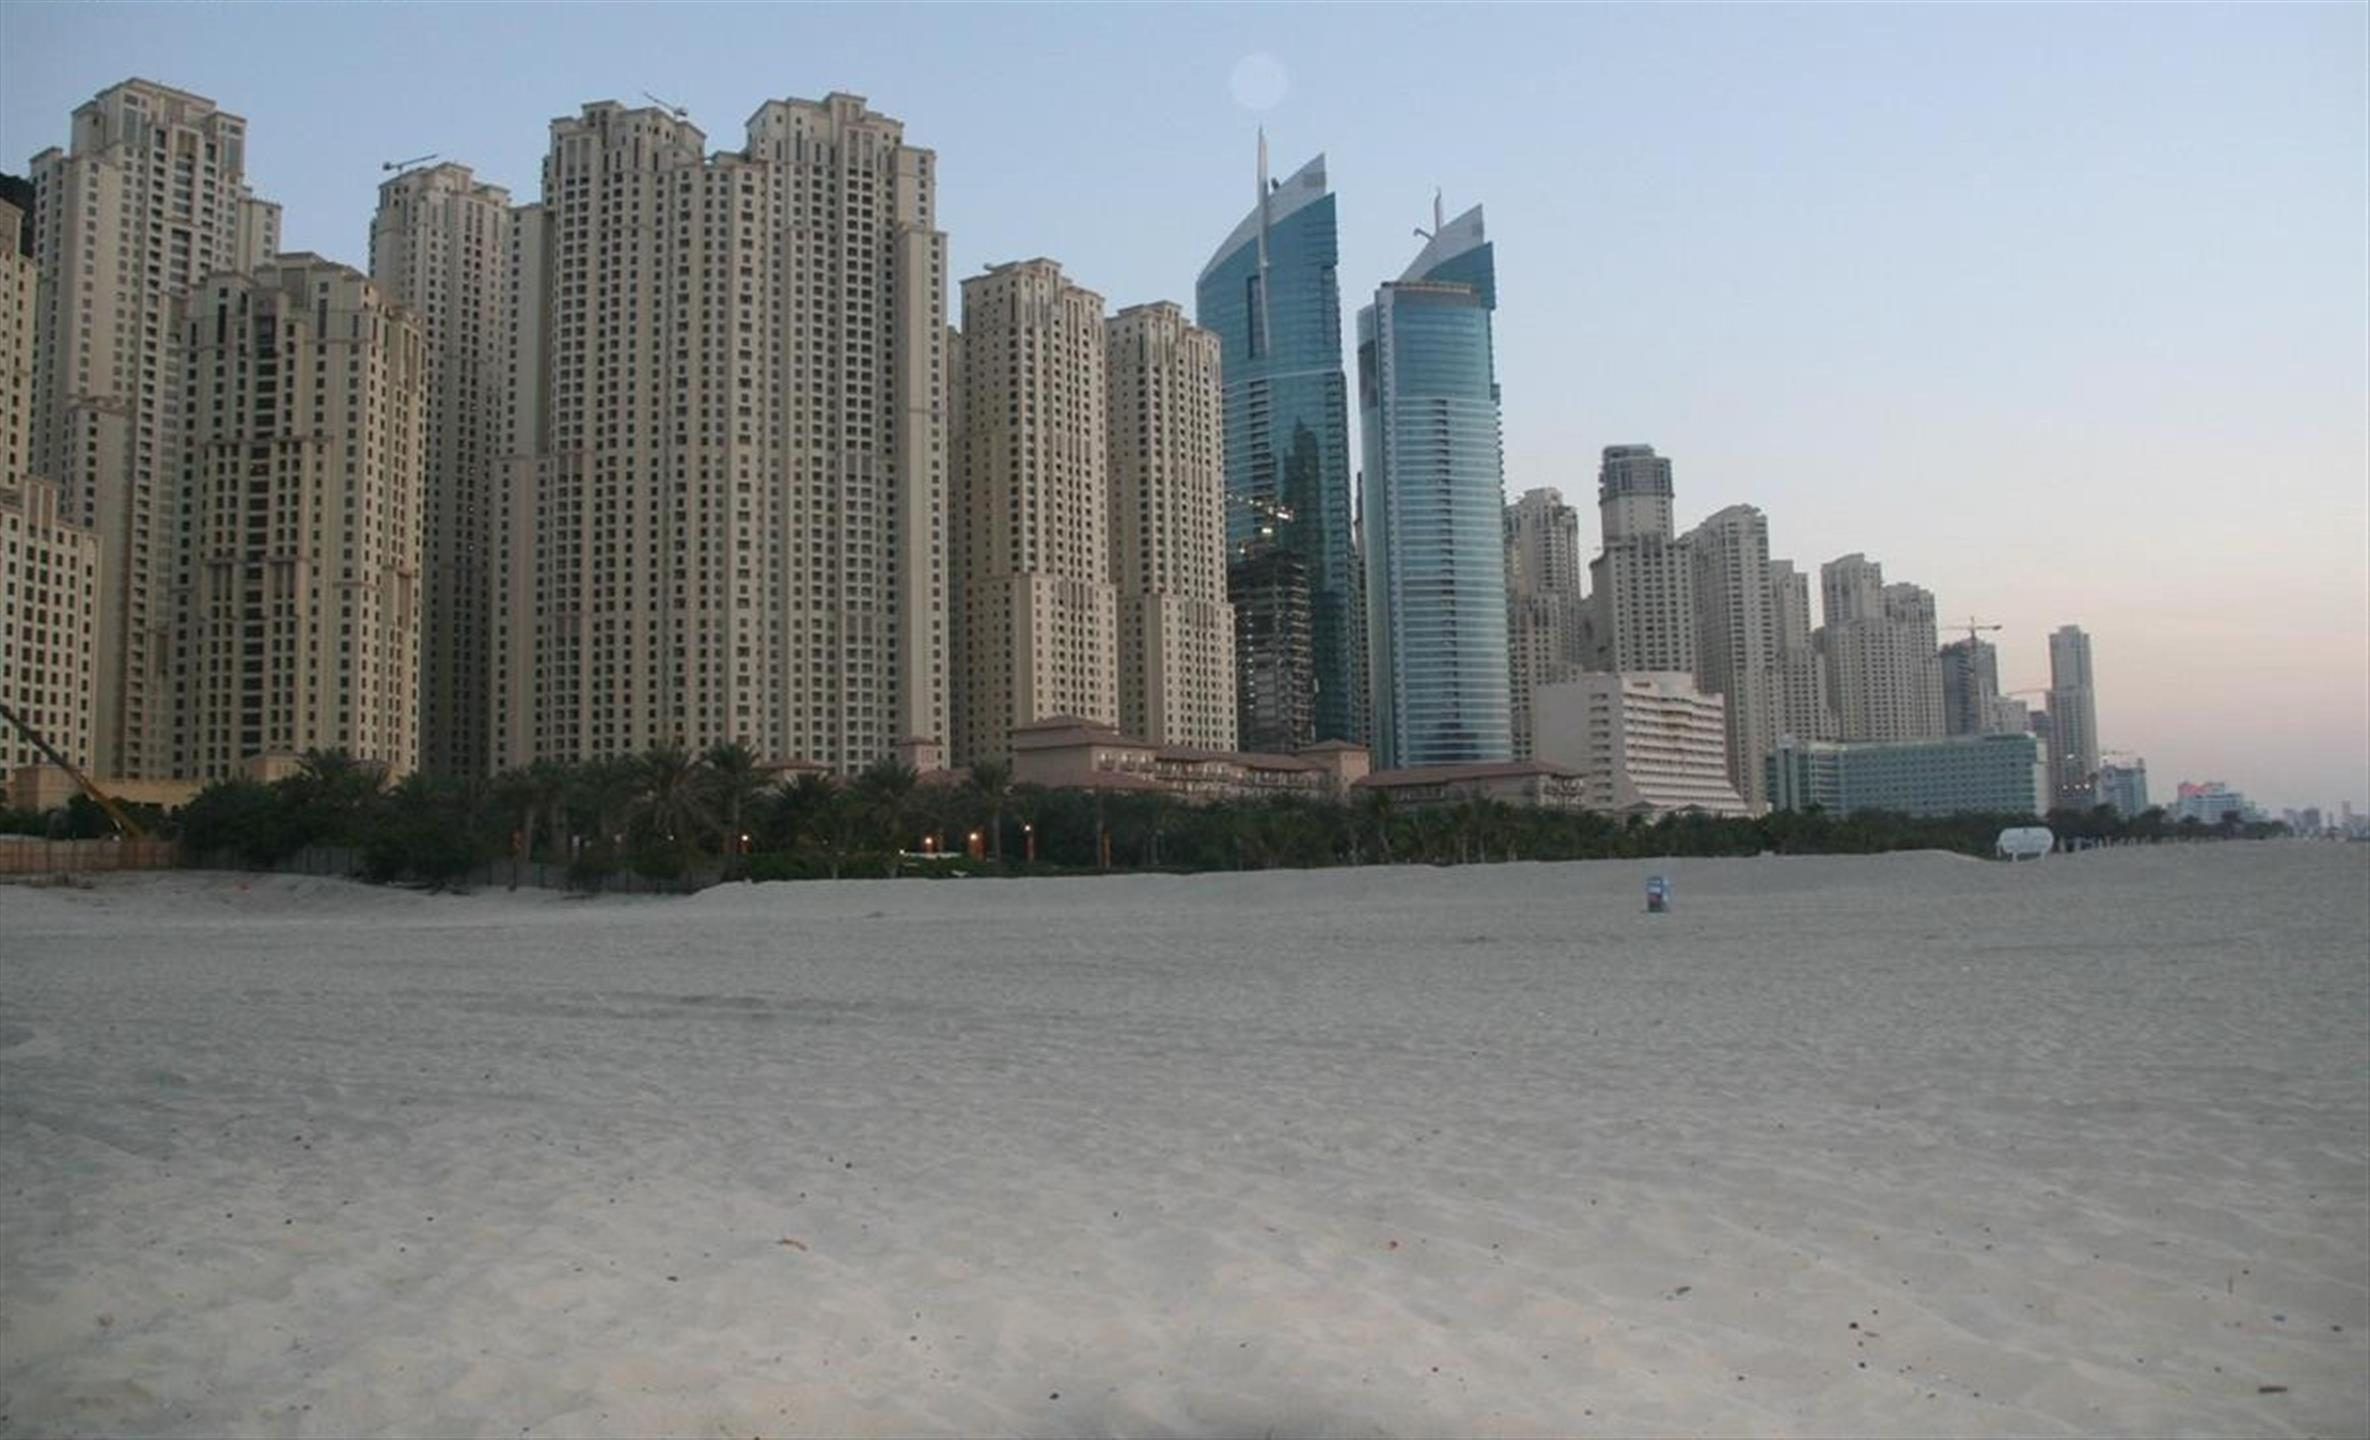 Residential Apartment/Condo, for Sale in United Arab Emirates, Dubai, Jumeirah Beach Residence